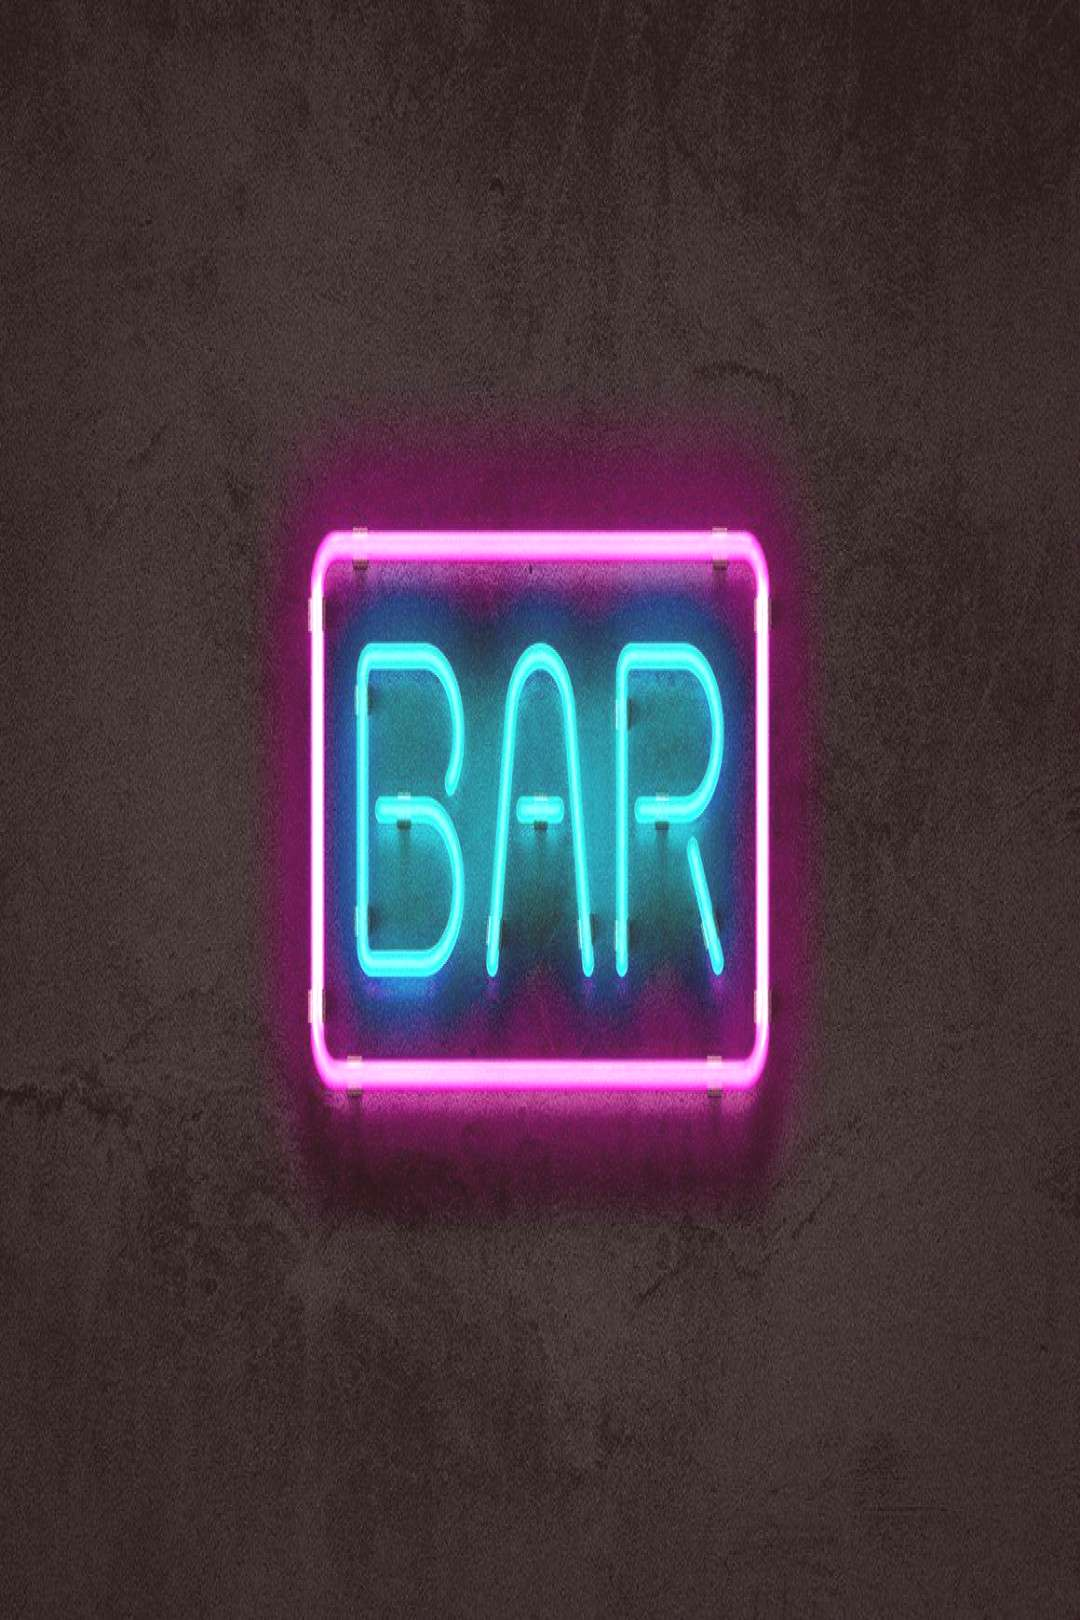 Neon Text Effect Photoshop : effect, photoshop, Effect, Layer, Styles, Photoshop., Create, Digital, Signs